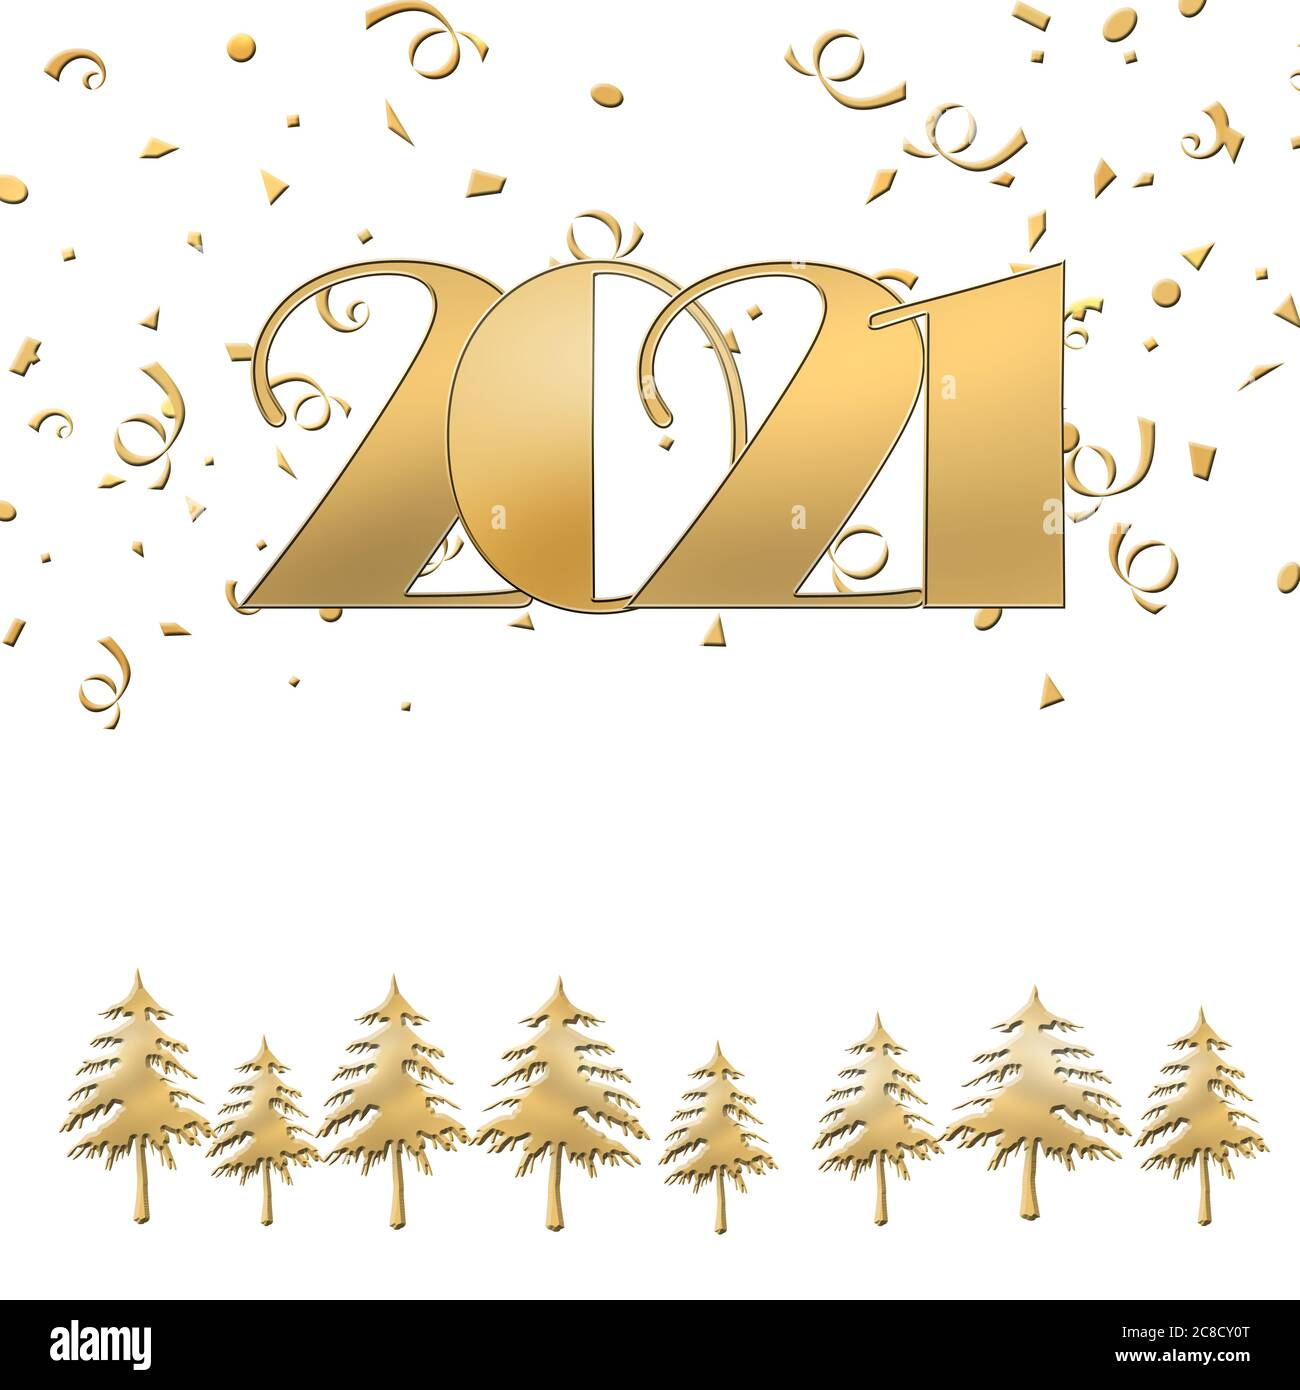 2021 Christmas White Background 2021 Happy New Year Merry Christmas Gold Text On White Background With Gold Christmas Trees And